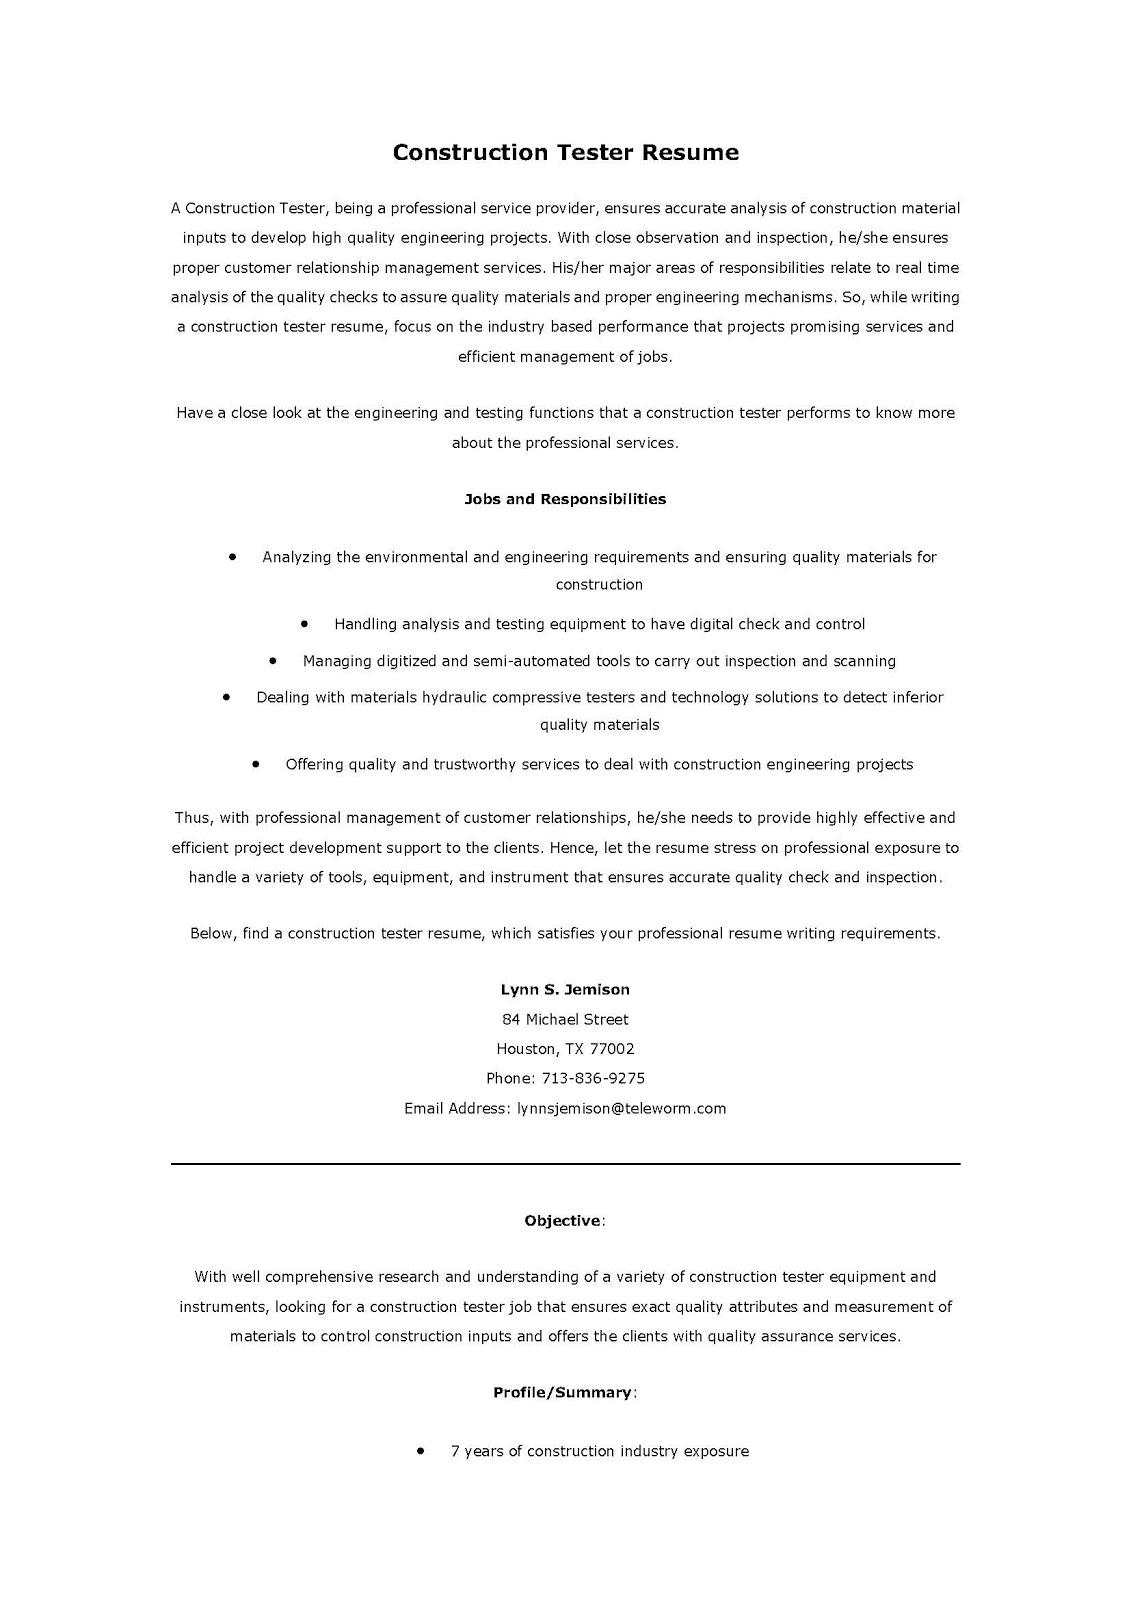 resume samples  construction tester resume